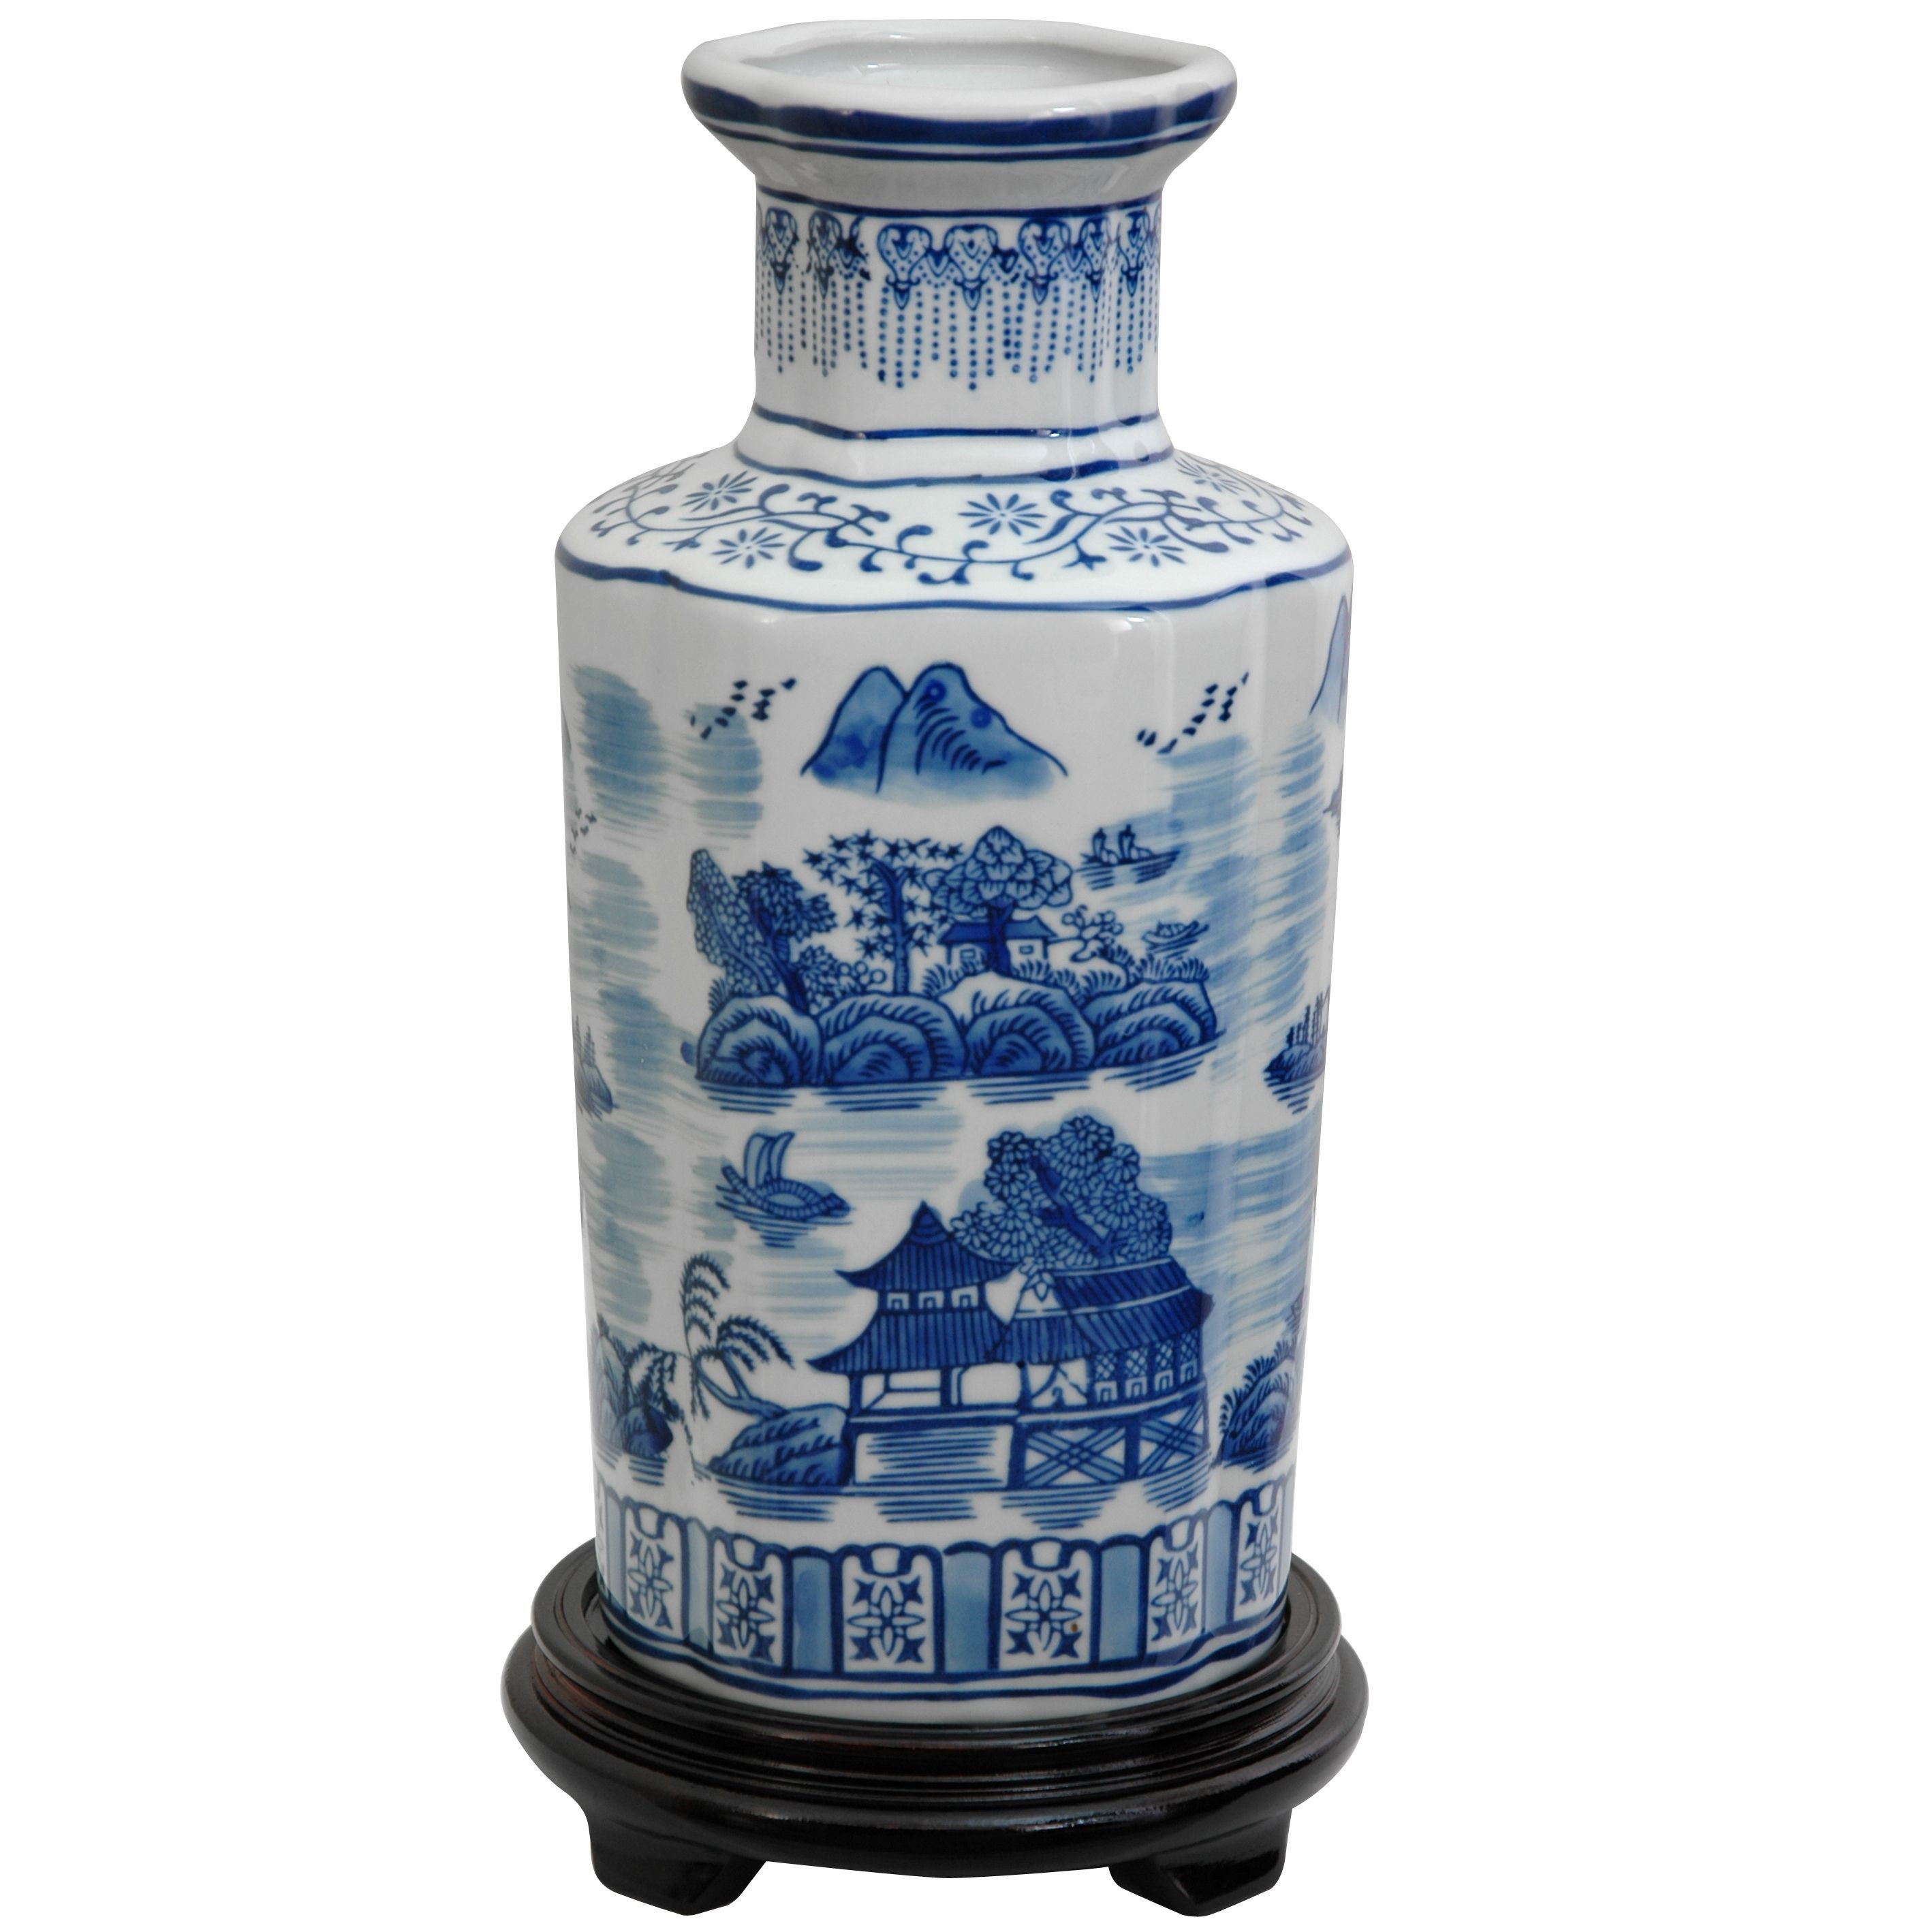 blue and white asian vase of handmade porcelain 12 inch blue and white landscape vase 12 throughout handmade porcelain 12 inch blue and white landscape vase china